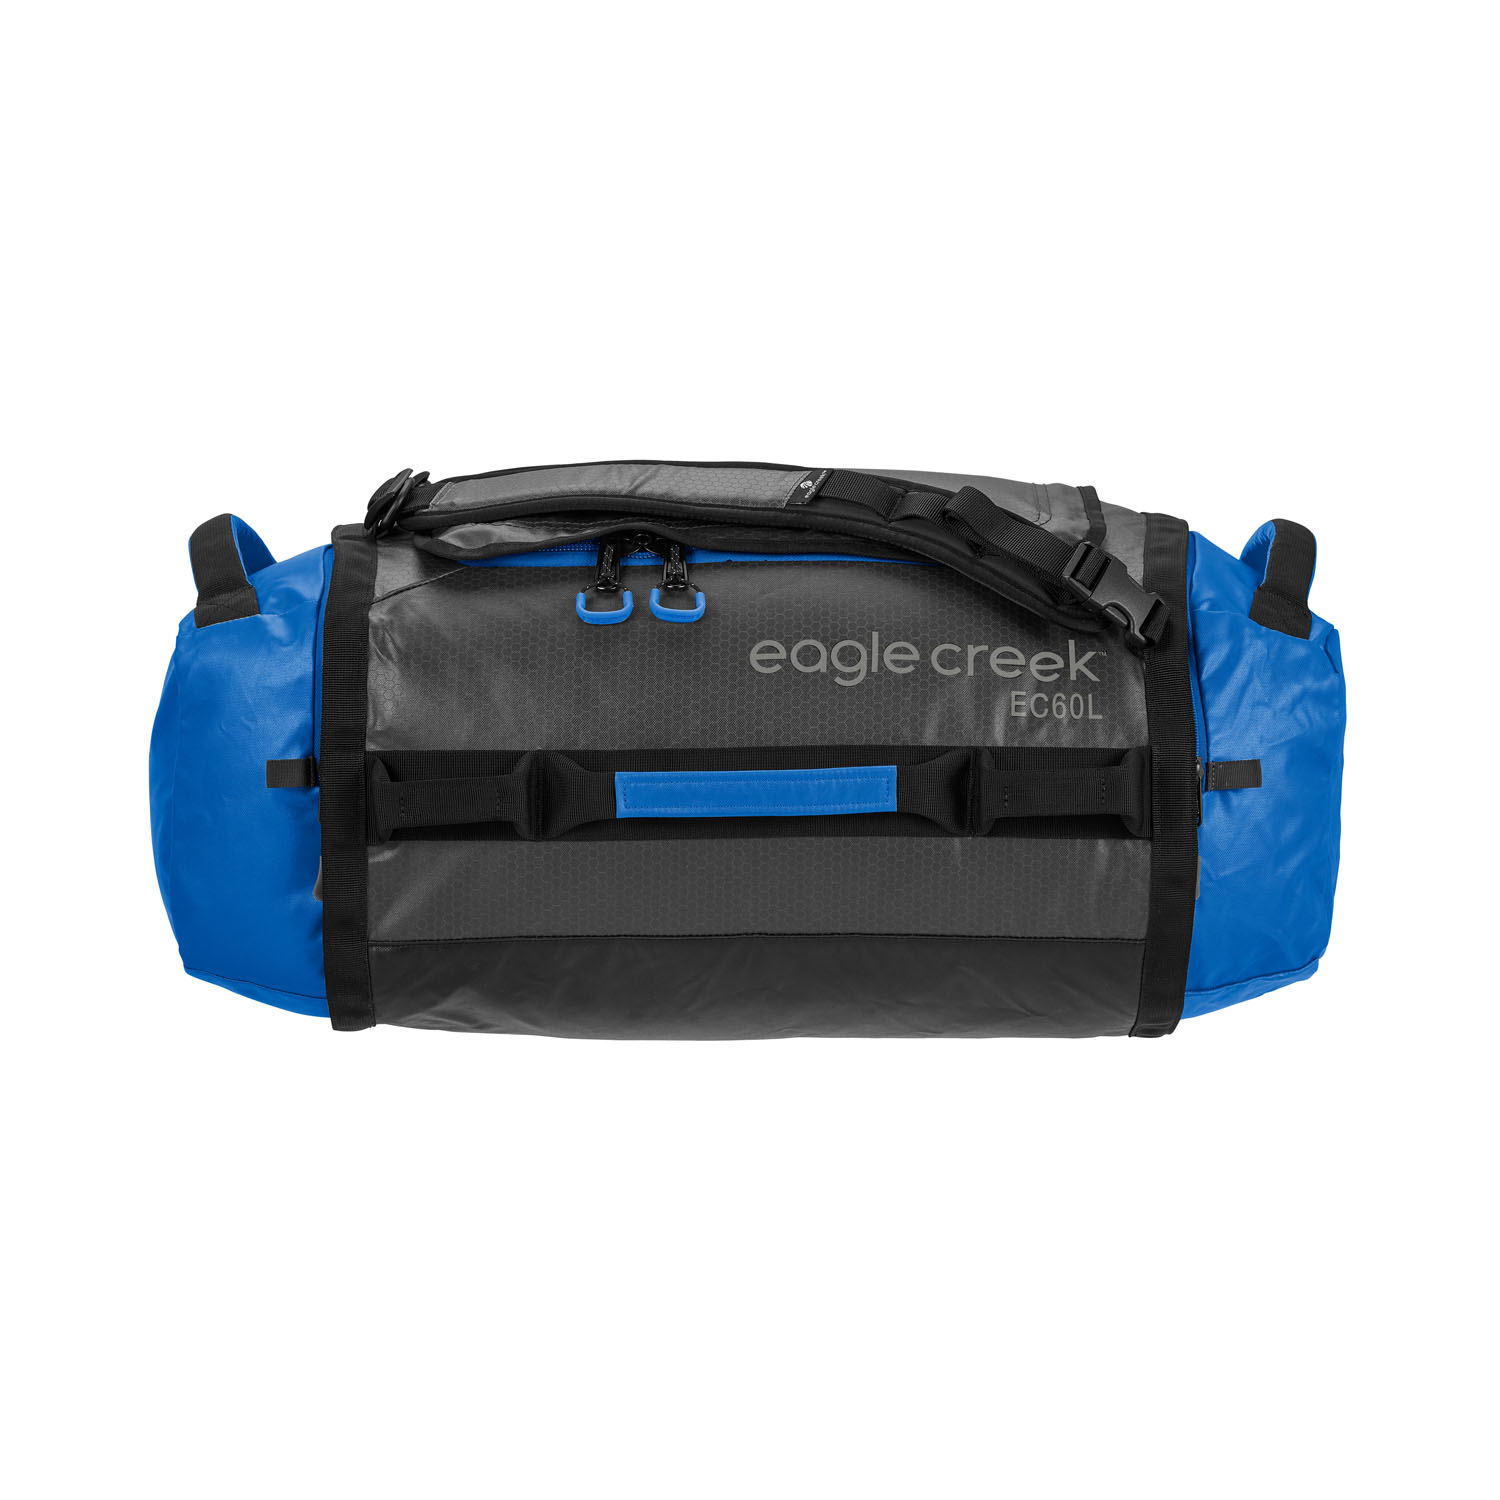 9a9cafb16a Buy Eagle Creek Cargo Hauler Duffel 60L   M (Blue Asphalt) in ...